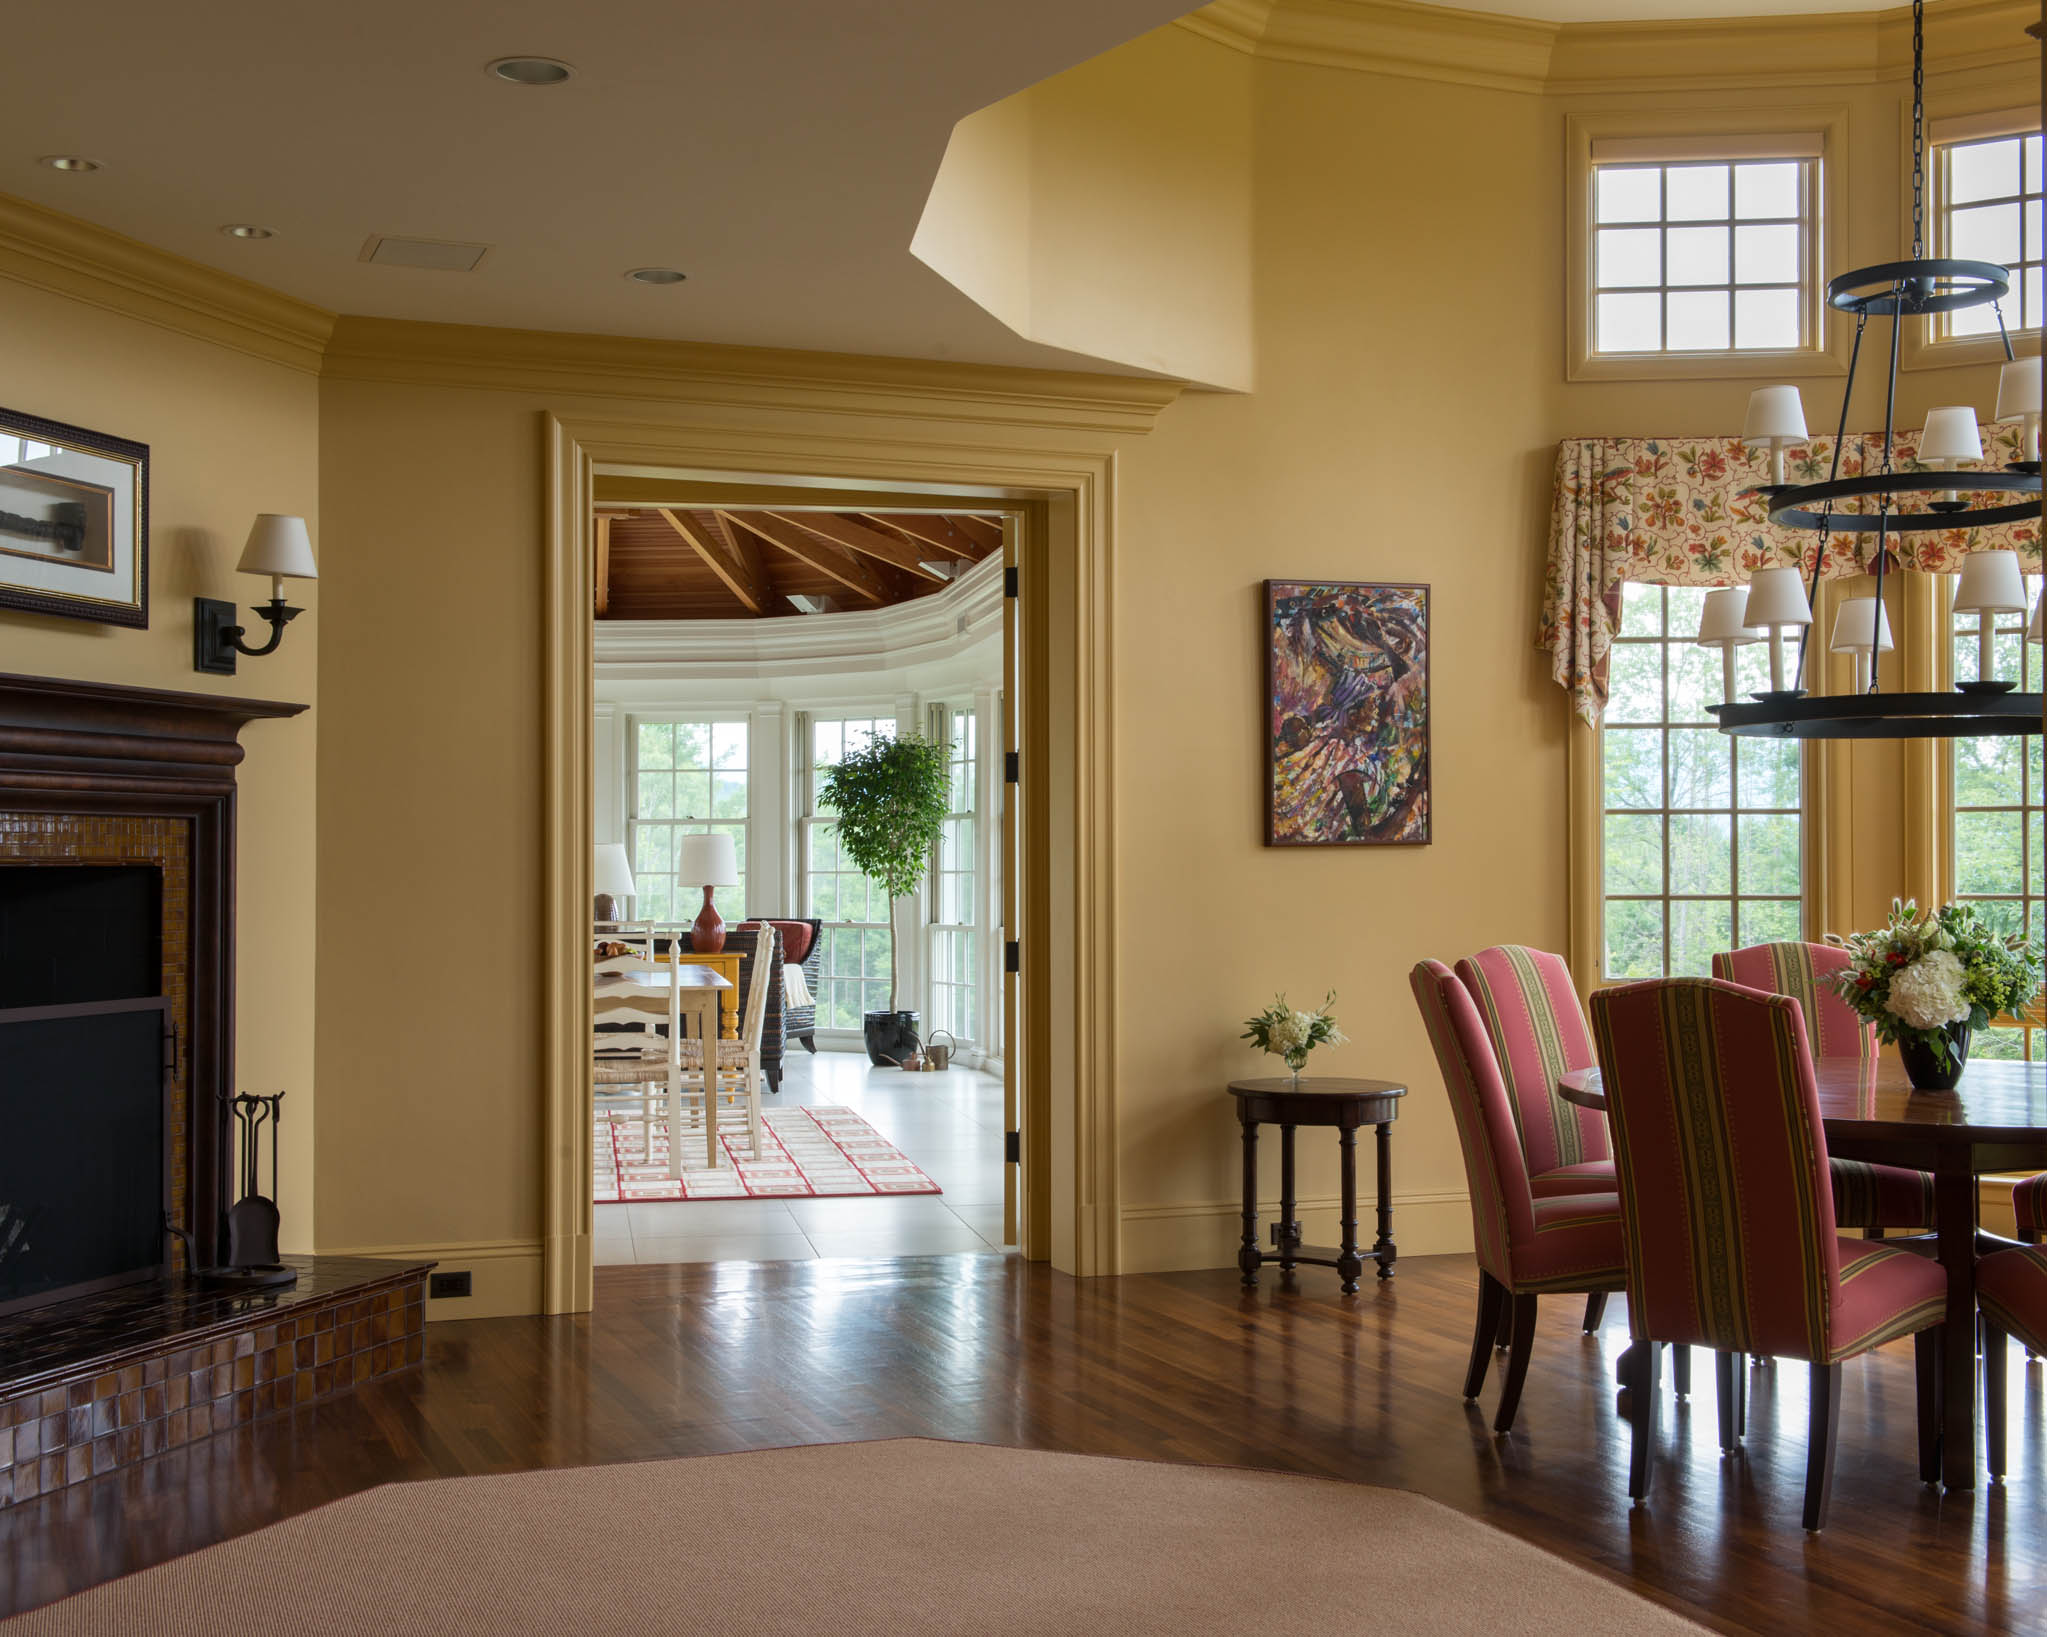 Dining New Hampshire Interior Designers Alice Williams  : JWH2220 from alicewilliamsinteriors.com size 2047 x 1637 jpeg 375kB